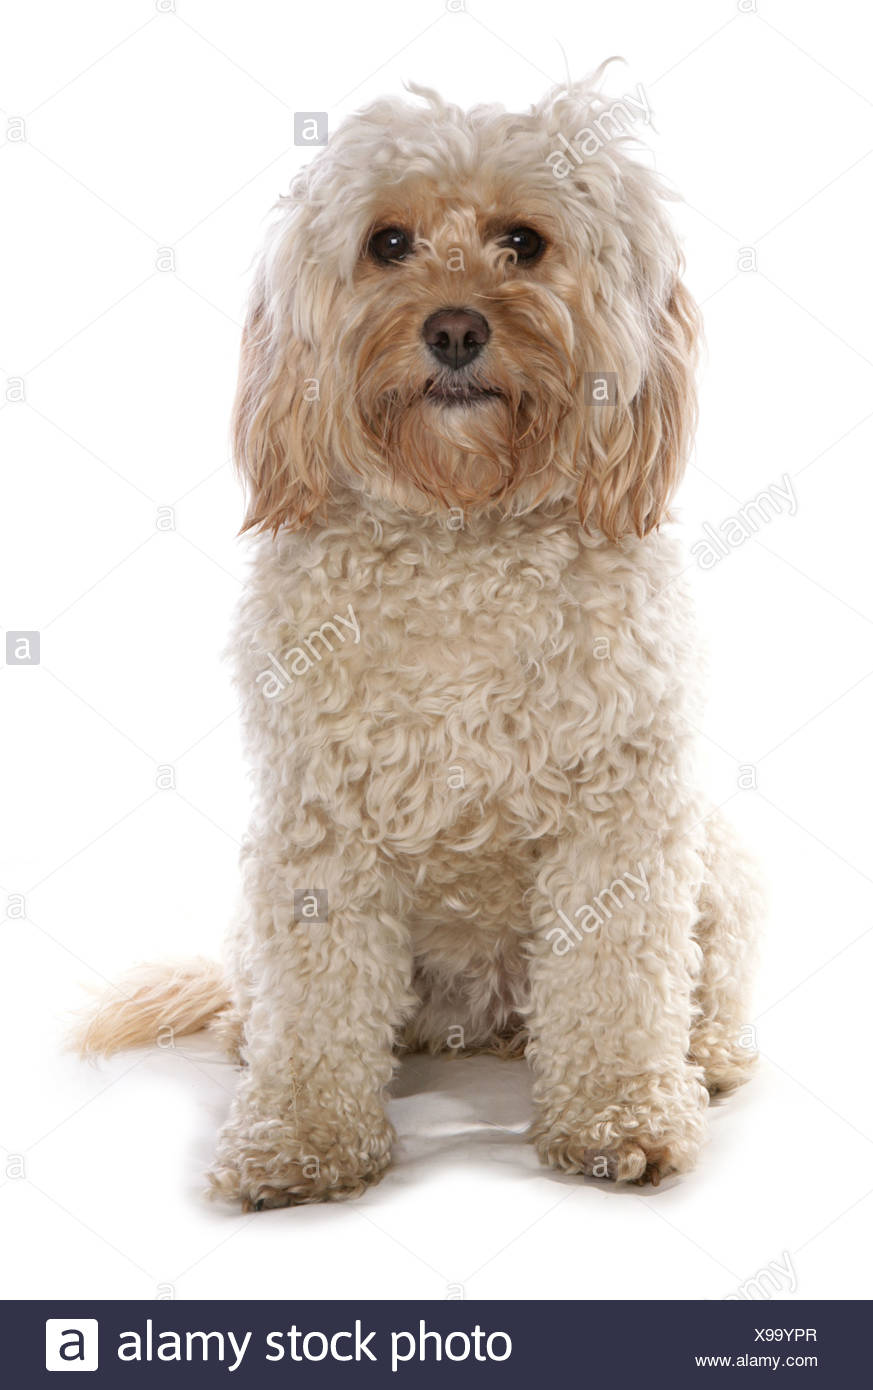 Domestic Dog, Cockerpoo (Cocker Spaniel x Poodle), adult female, sitting - Stock Image